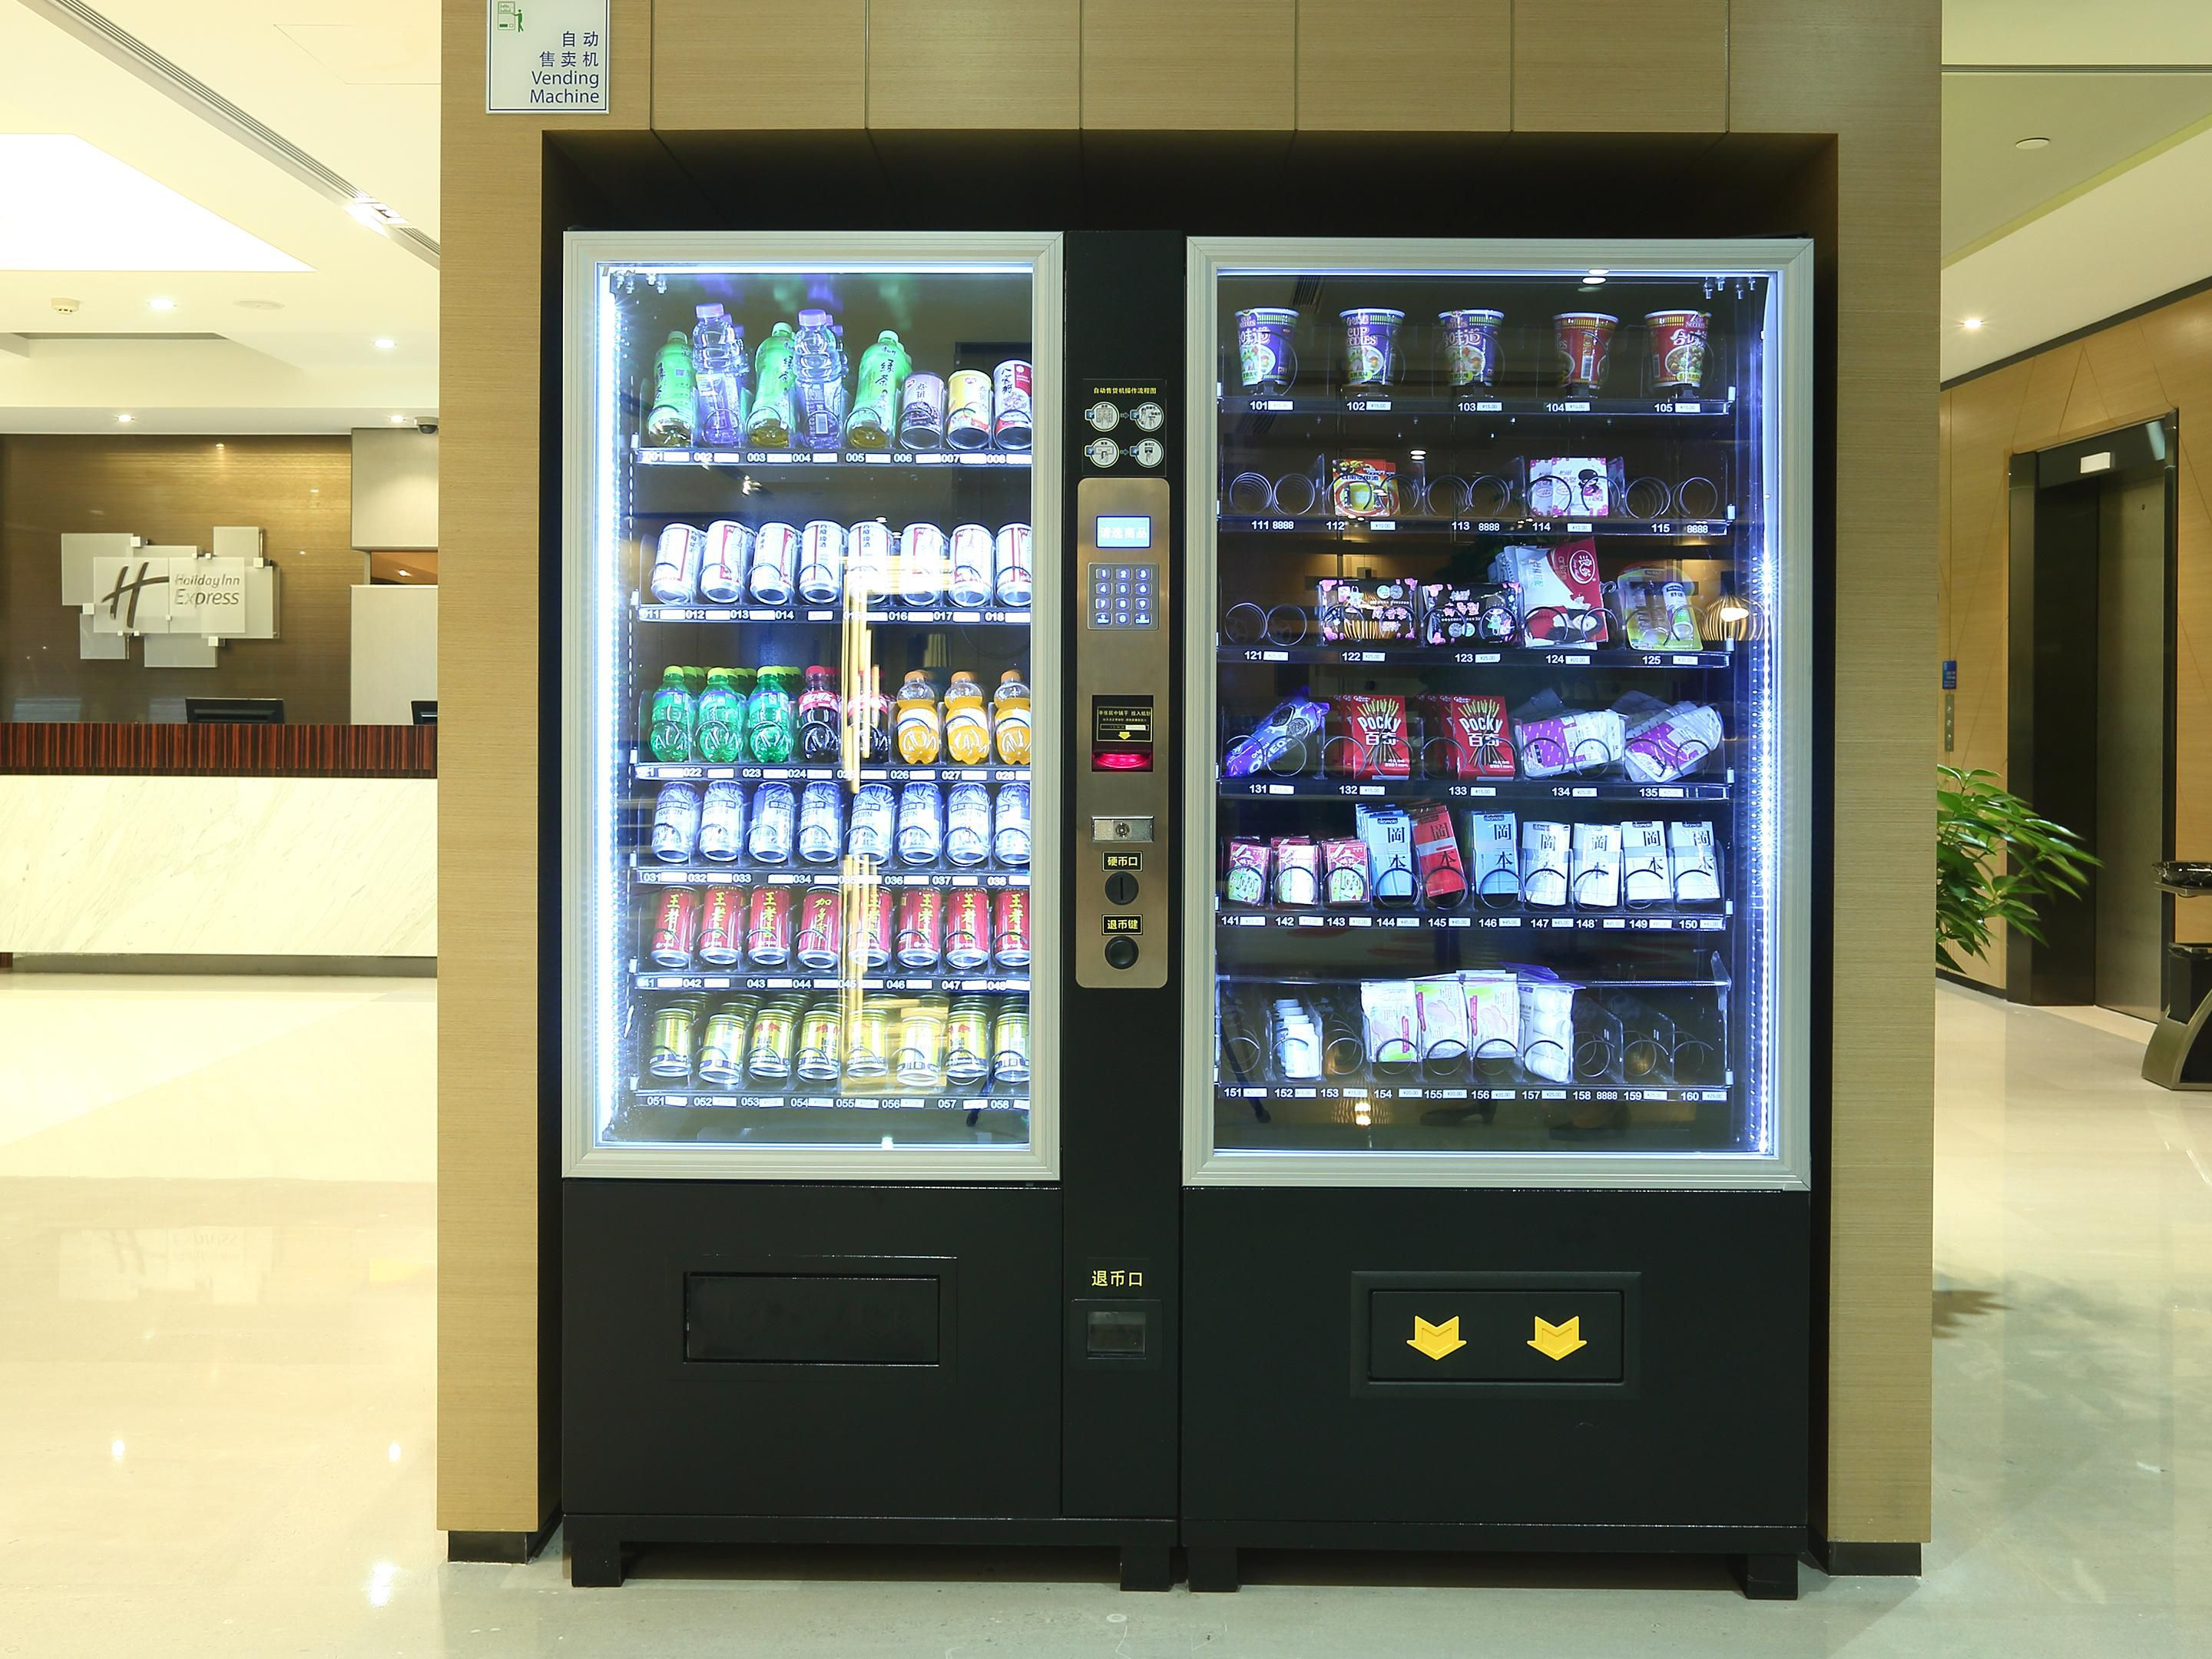 Holiday Inn Express Shanghai Gongkang Vending Machion